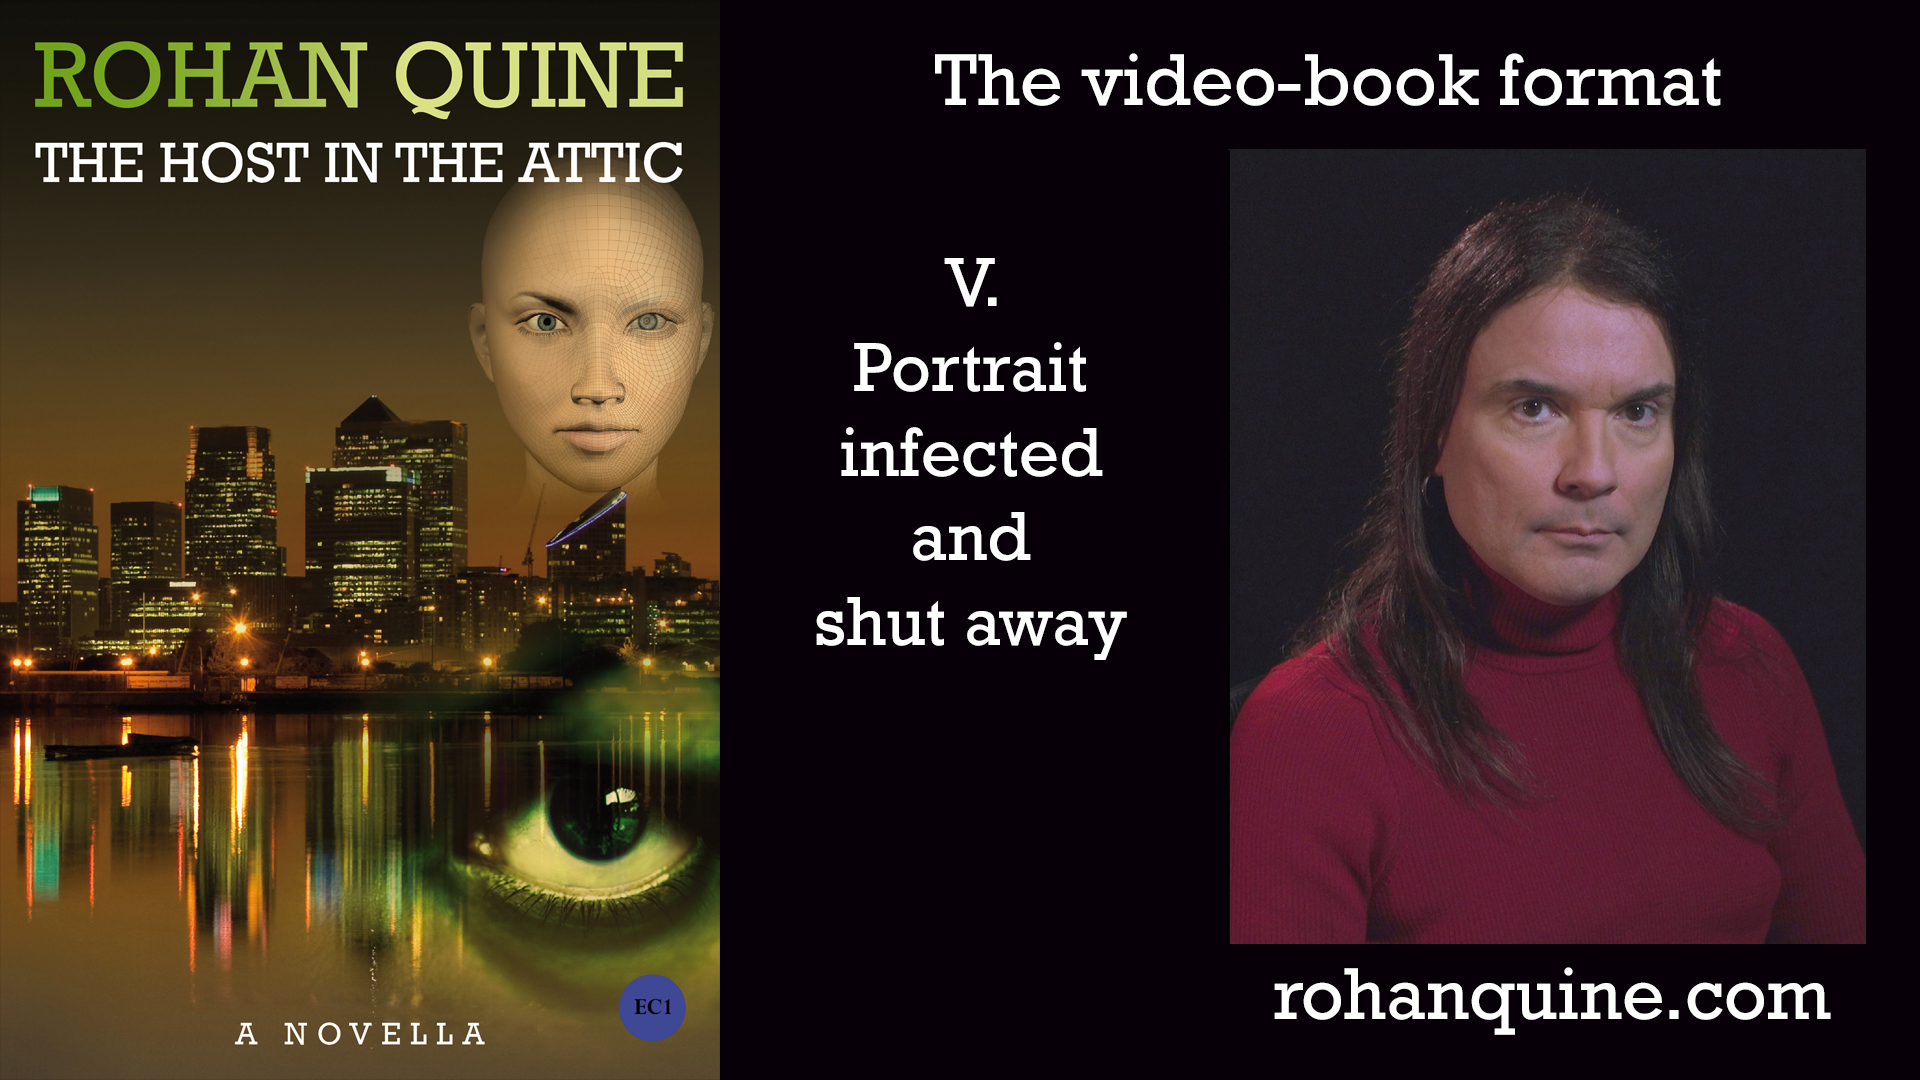 THE HOST IN THE ATTIC by Rohan Quine - video-book format - chapter V